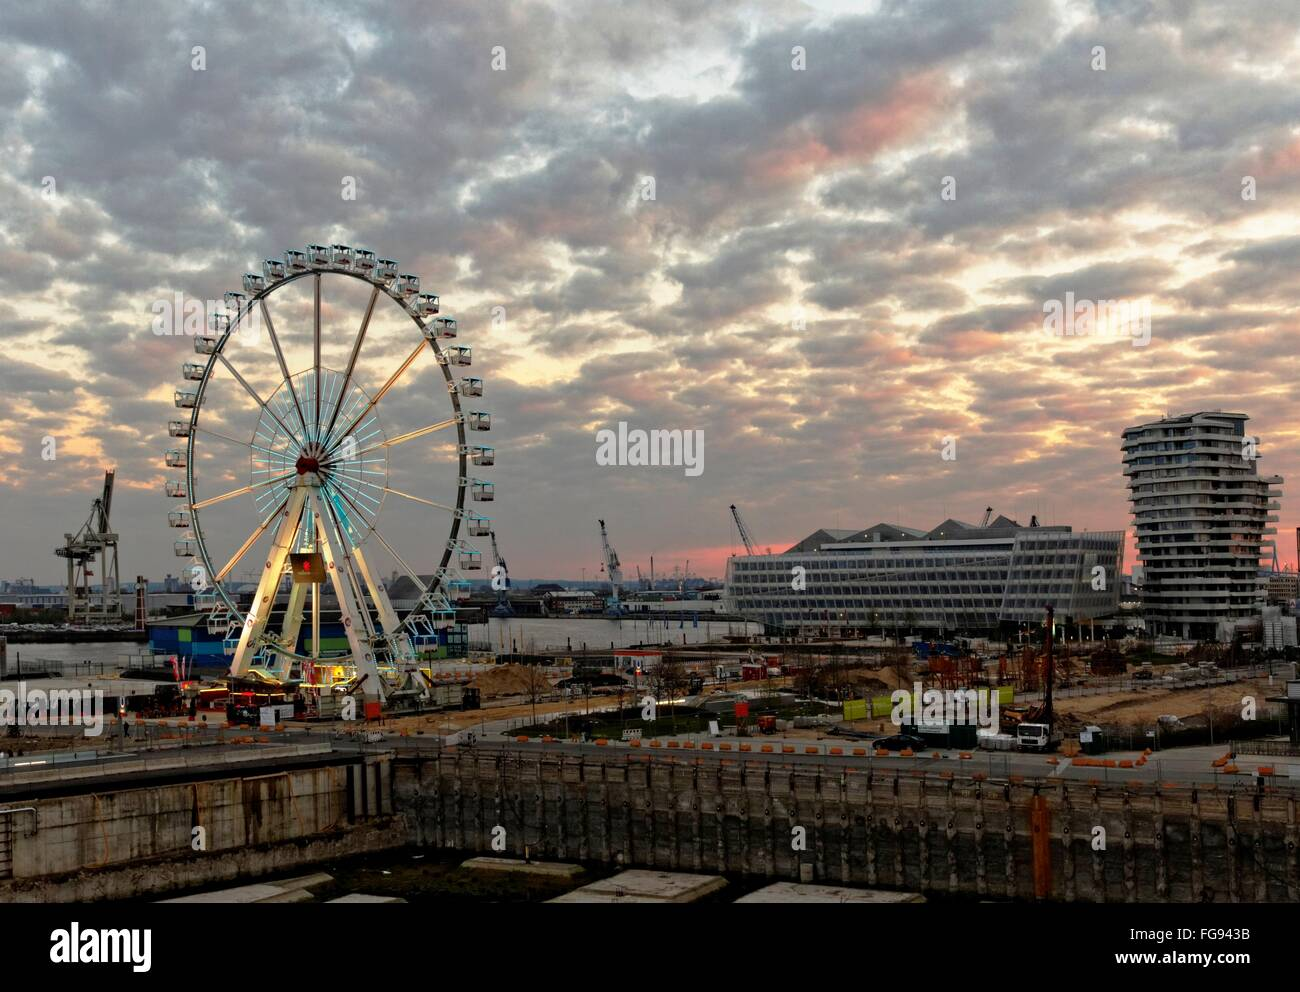 geography / travel, Germany, Hamburg, HafenCity, Grasbrookpark, Ferris wheel, Unilever building, Marco-Polo- Tower, - Stock Image